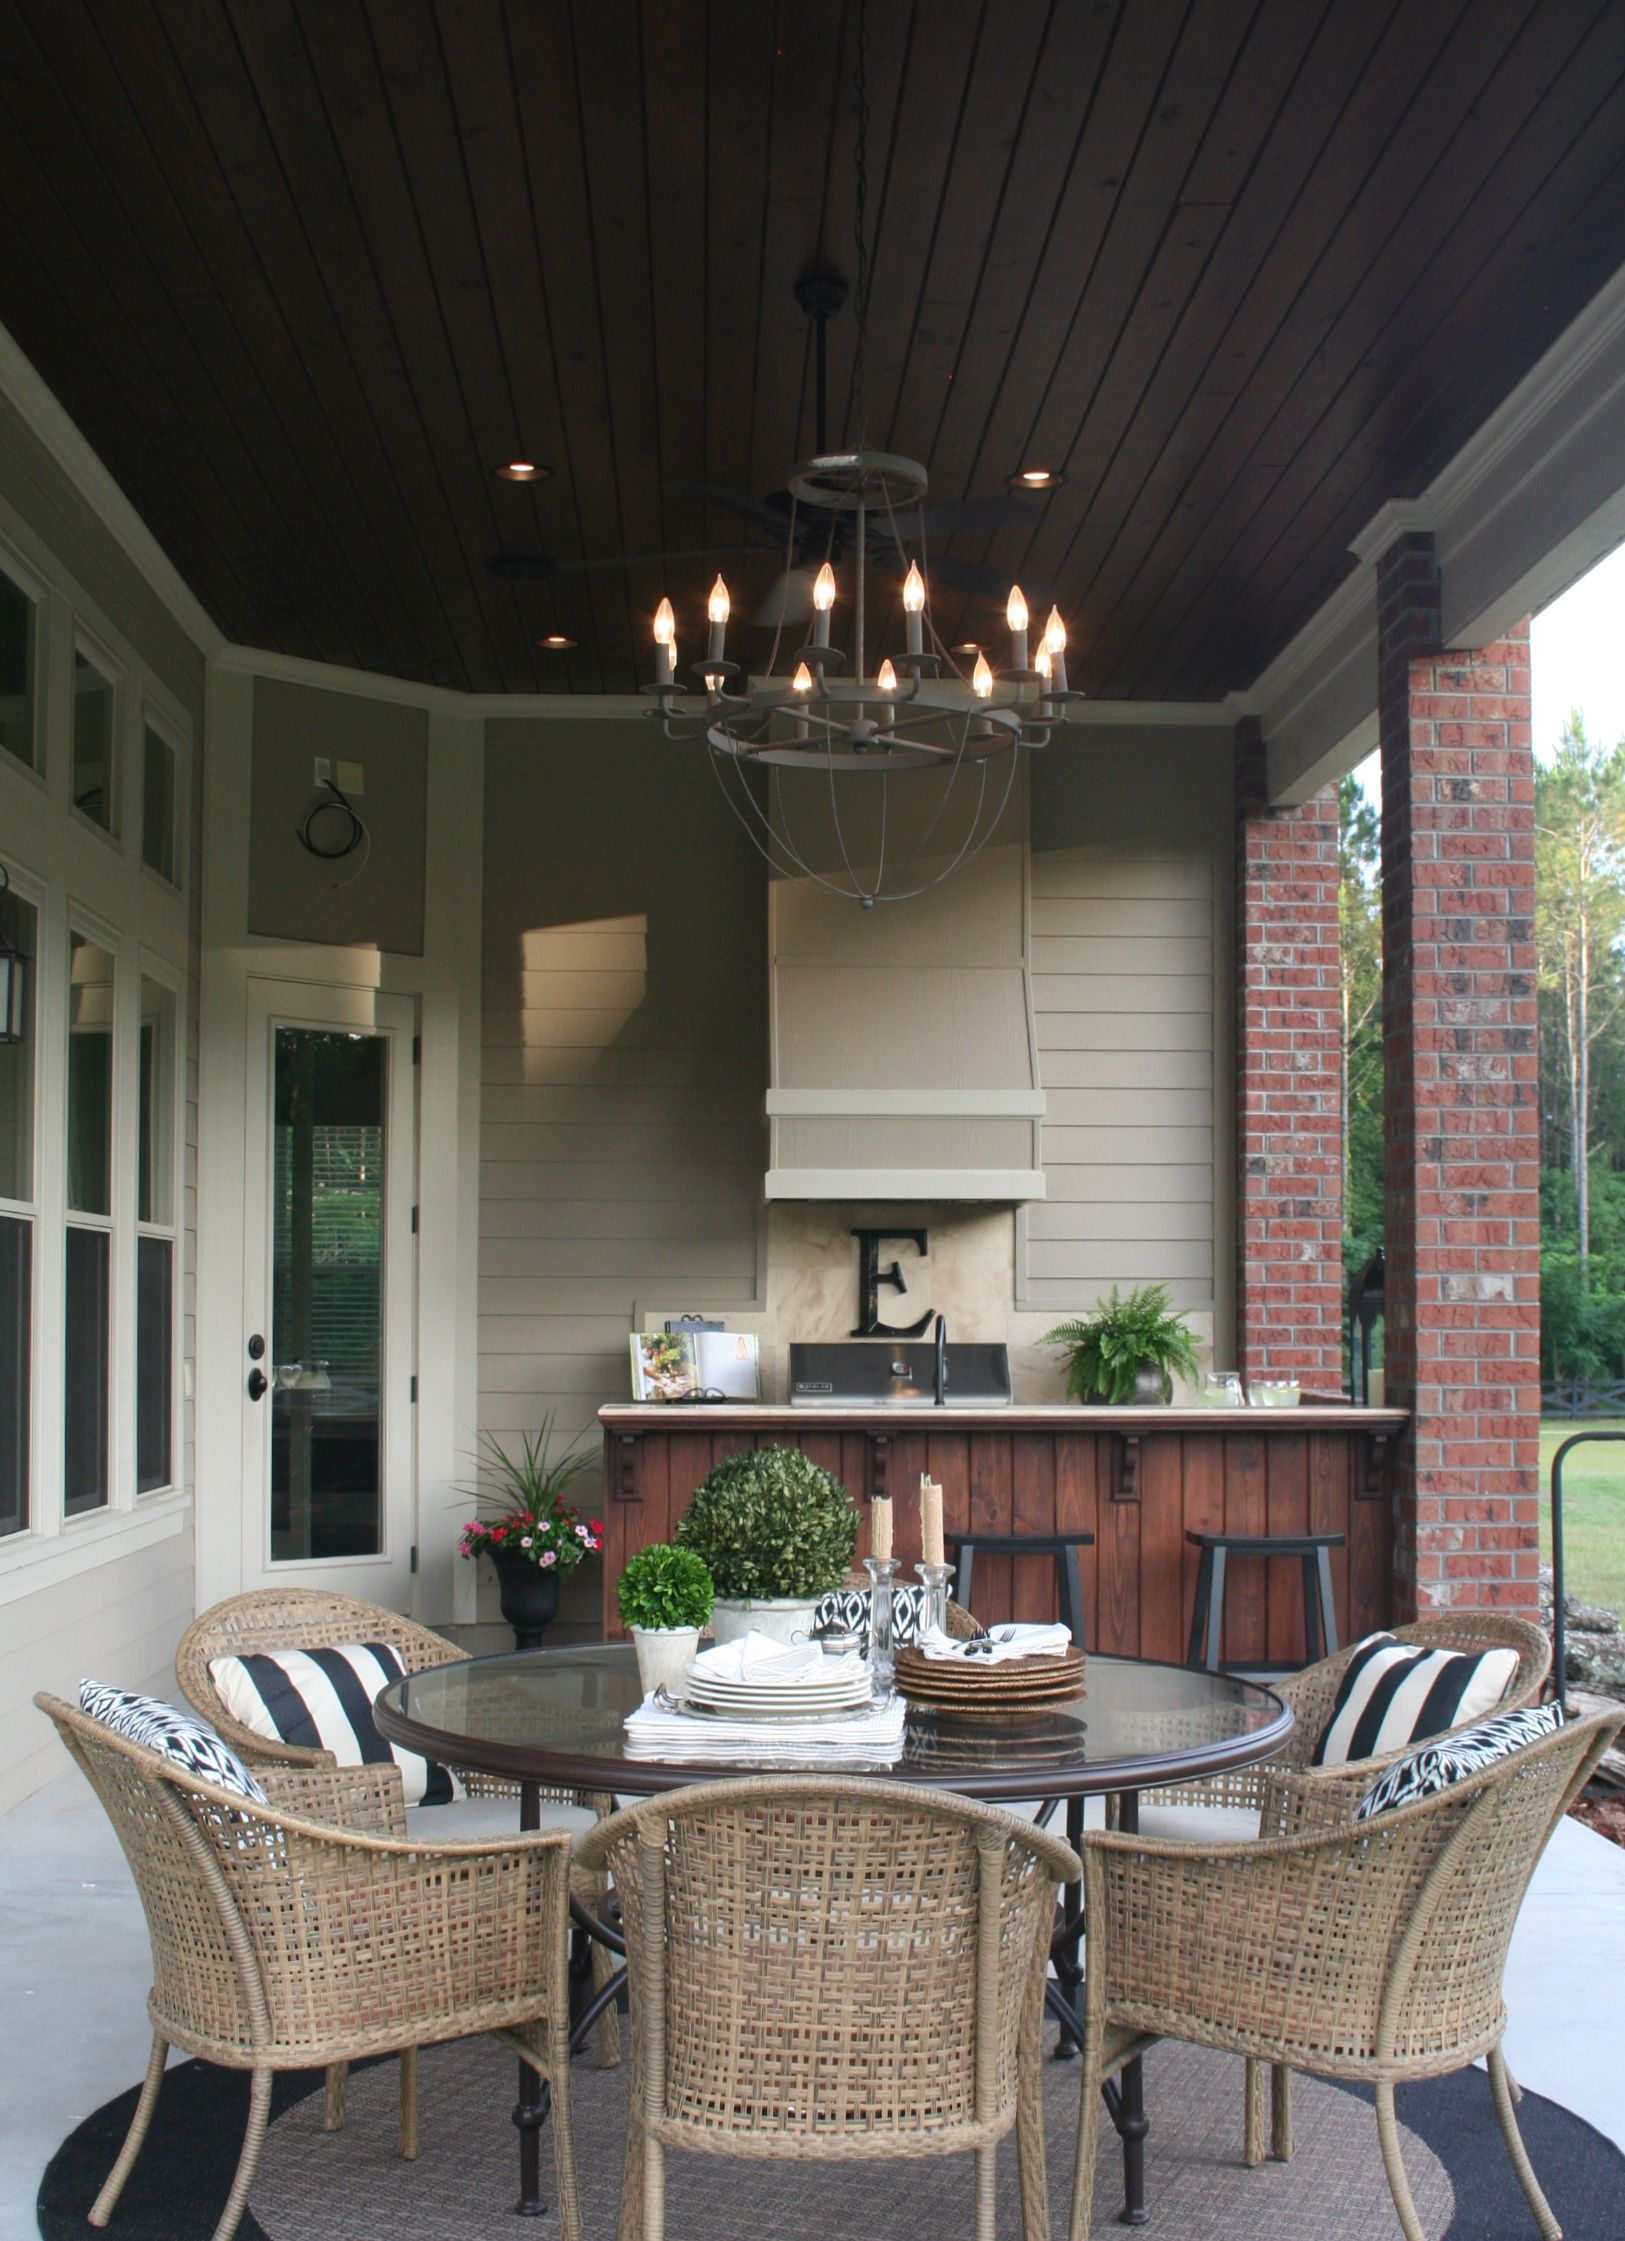 Anatomy of a great outdoor space...Summer kitchen complete with ...